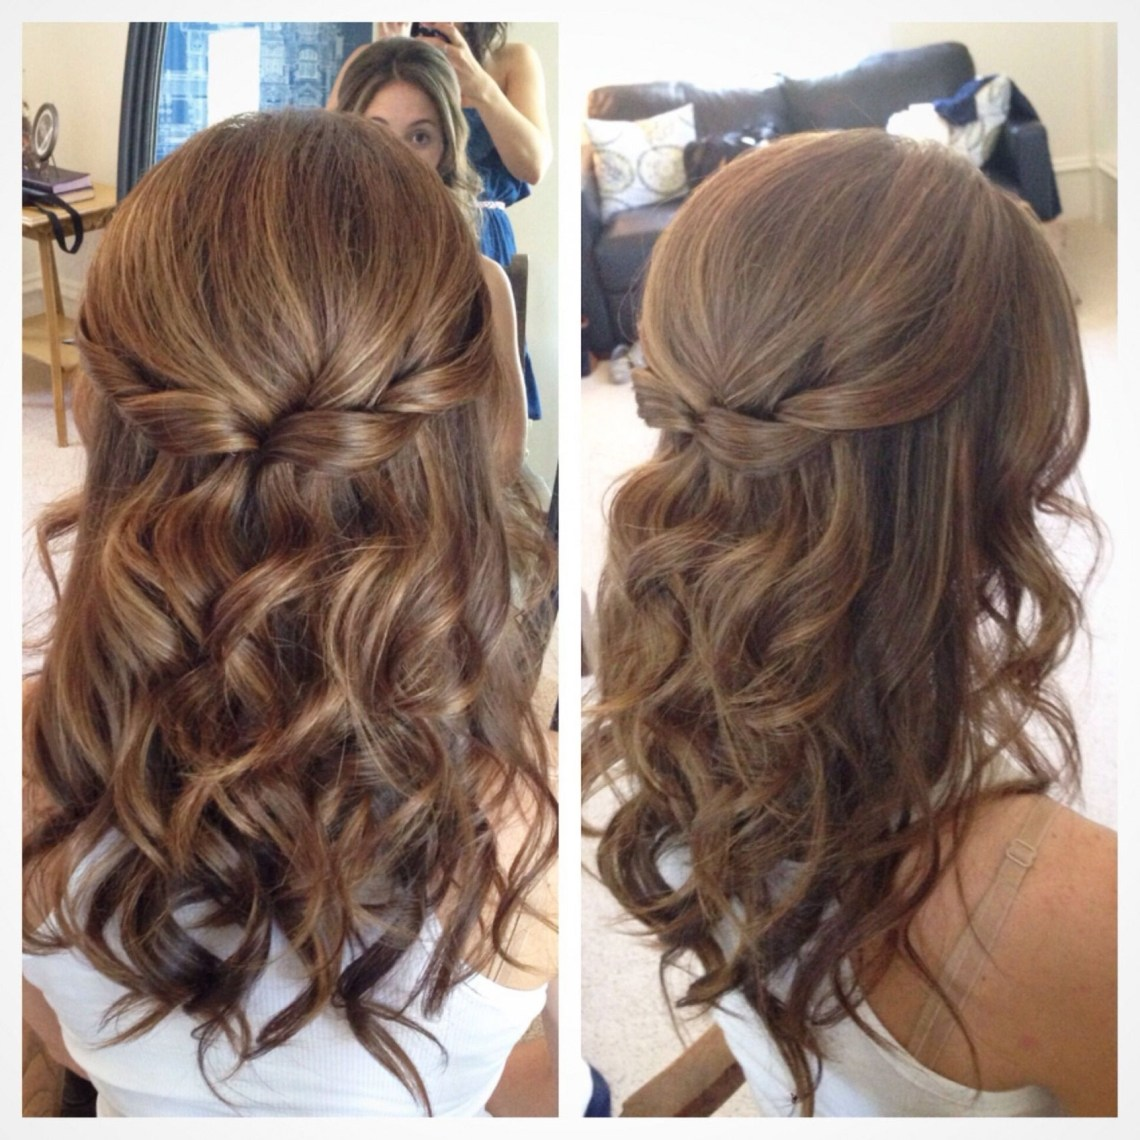 Half Up Half Down Wedding Hairstyles For Medium Length Hair Half Up Half Down Formal Hairstyles For Medium Hair